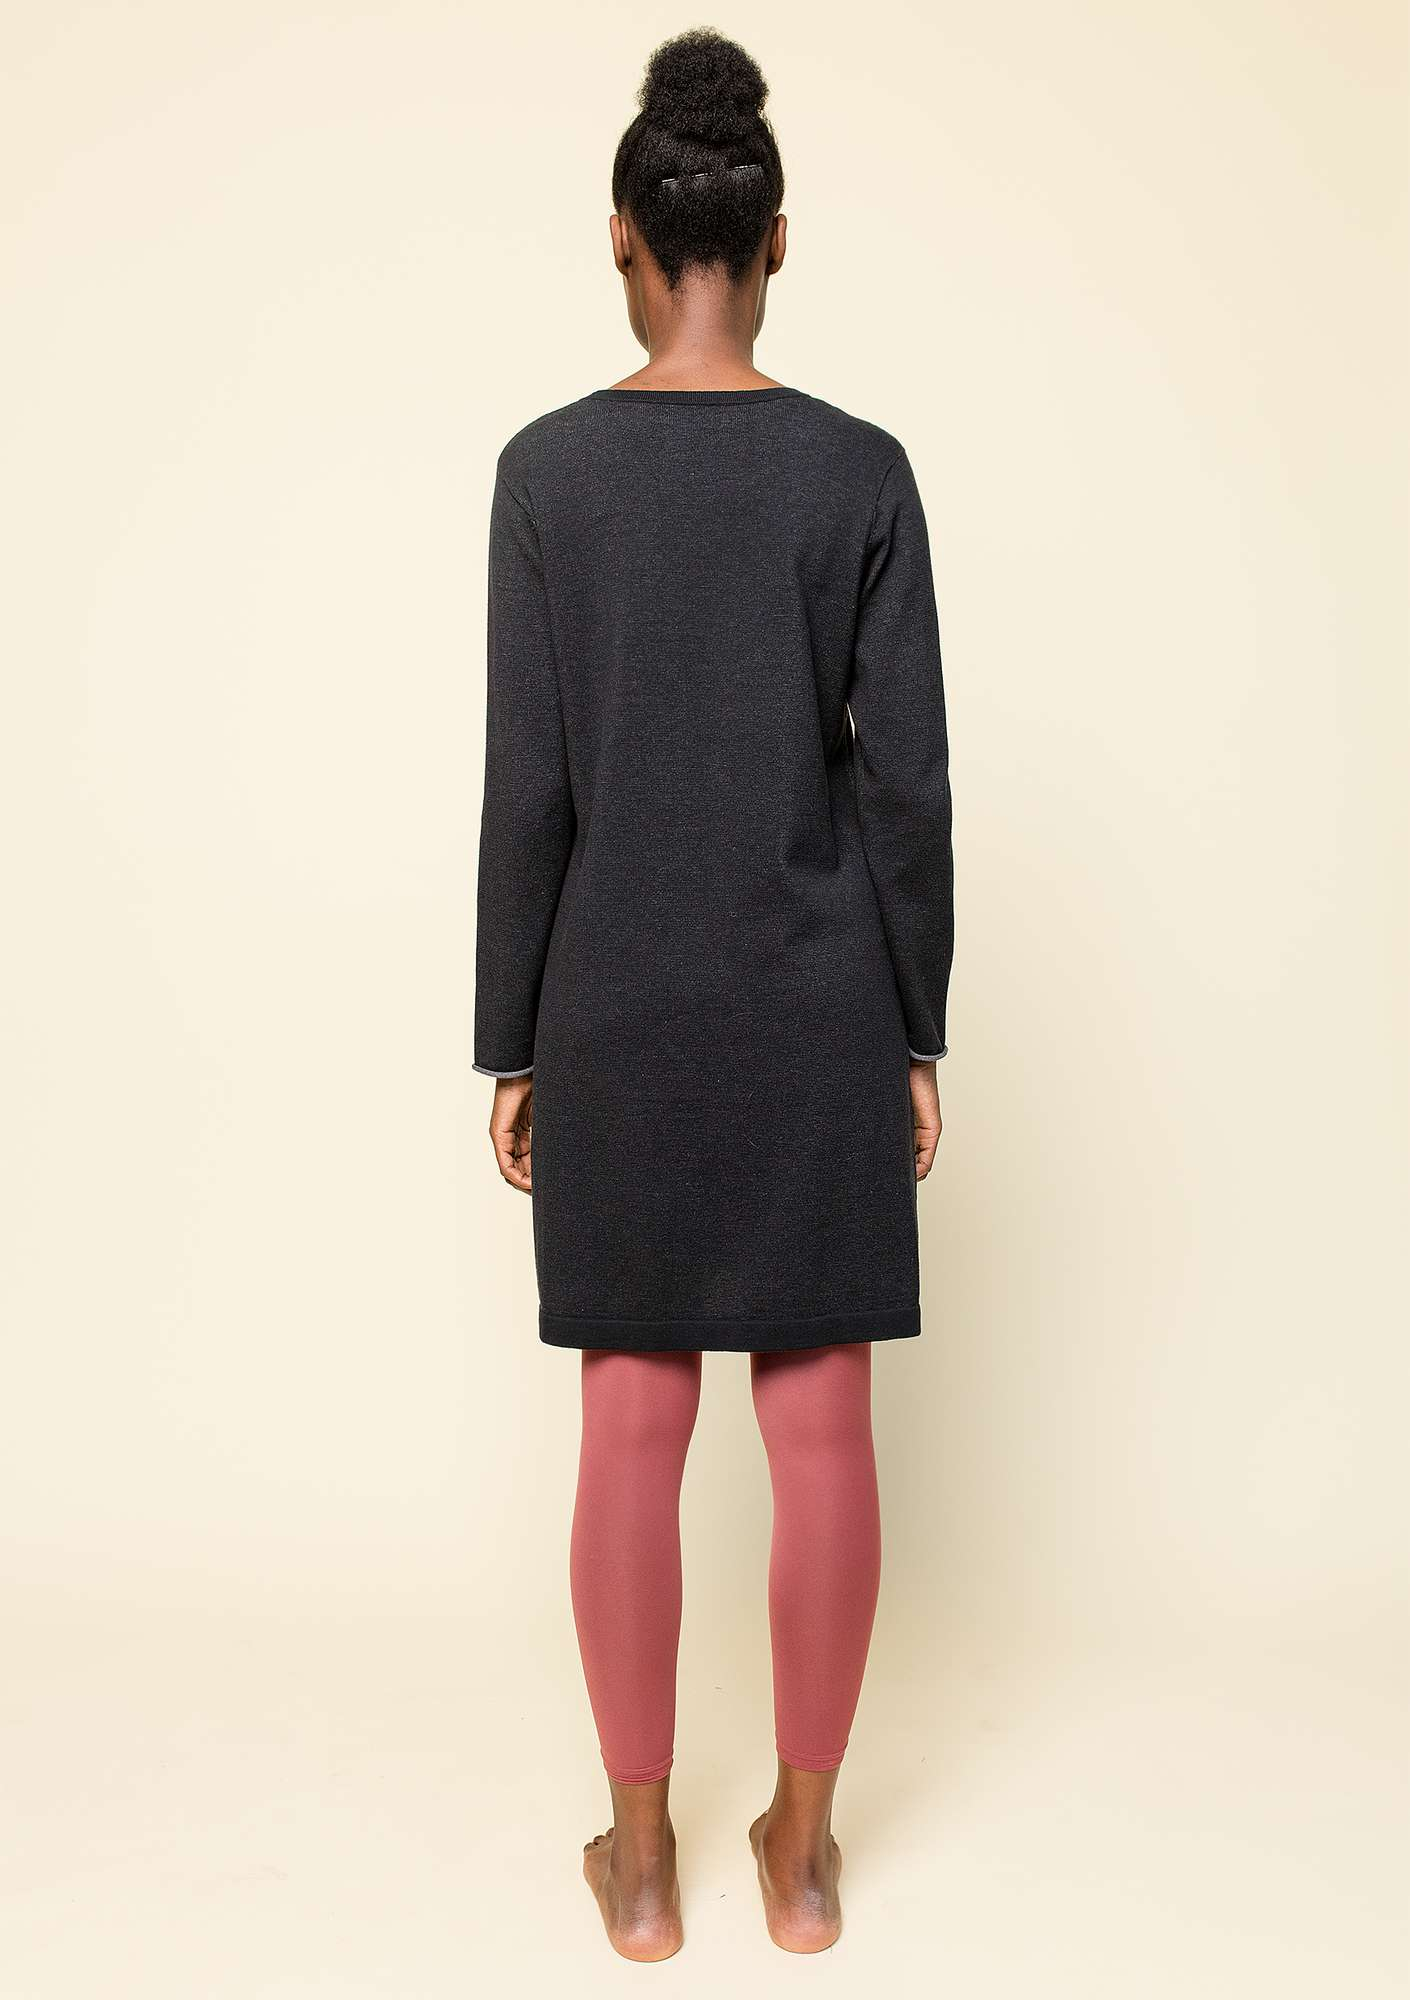 Plated tunic in eco-cotton black